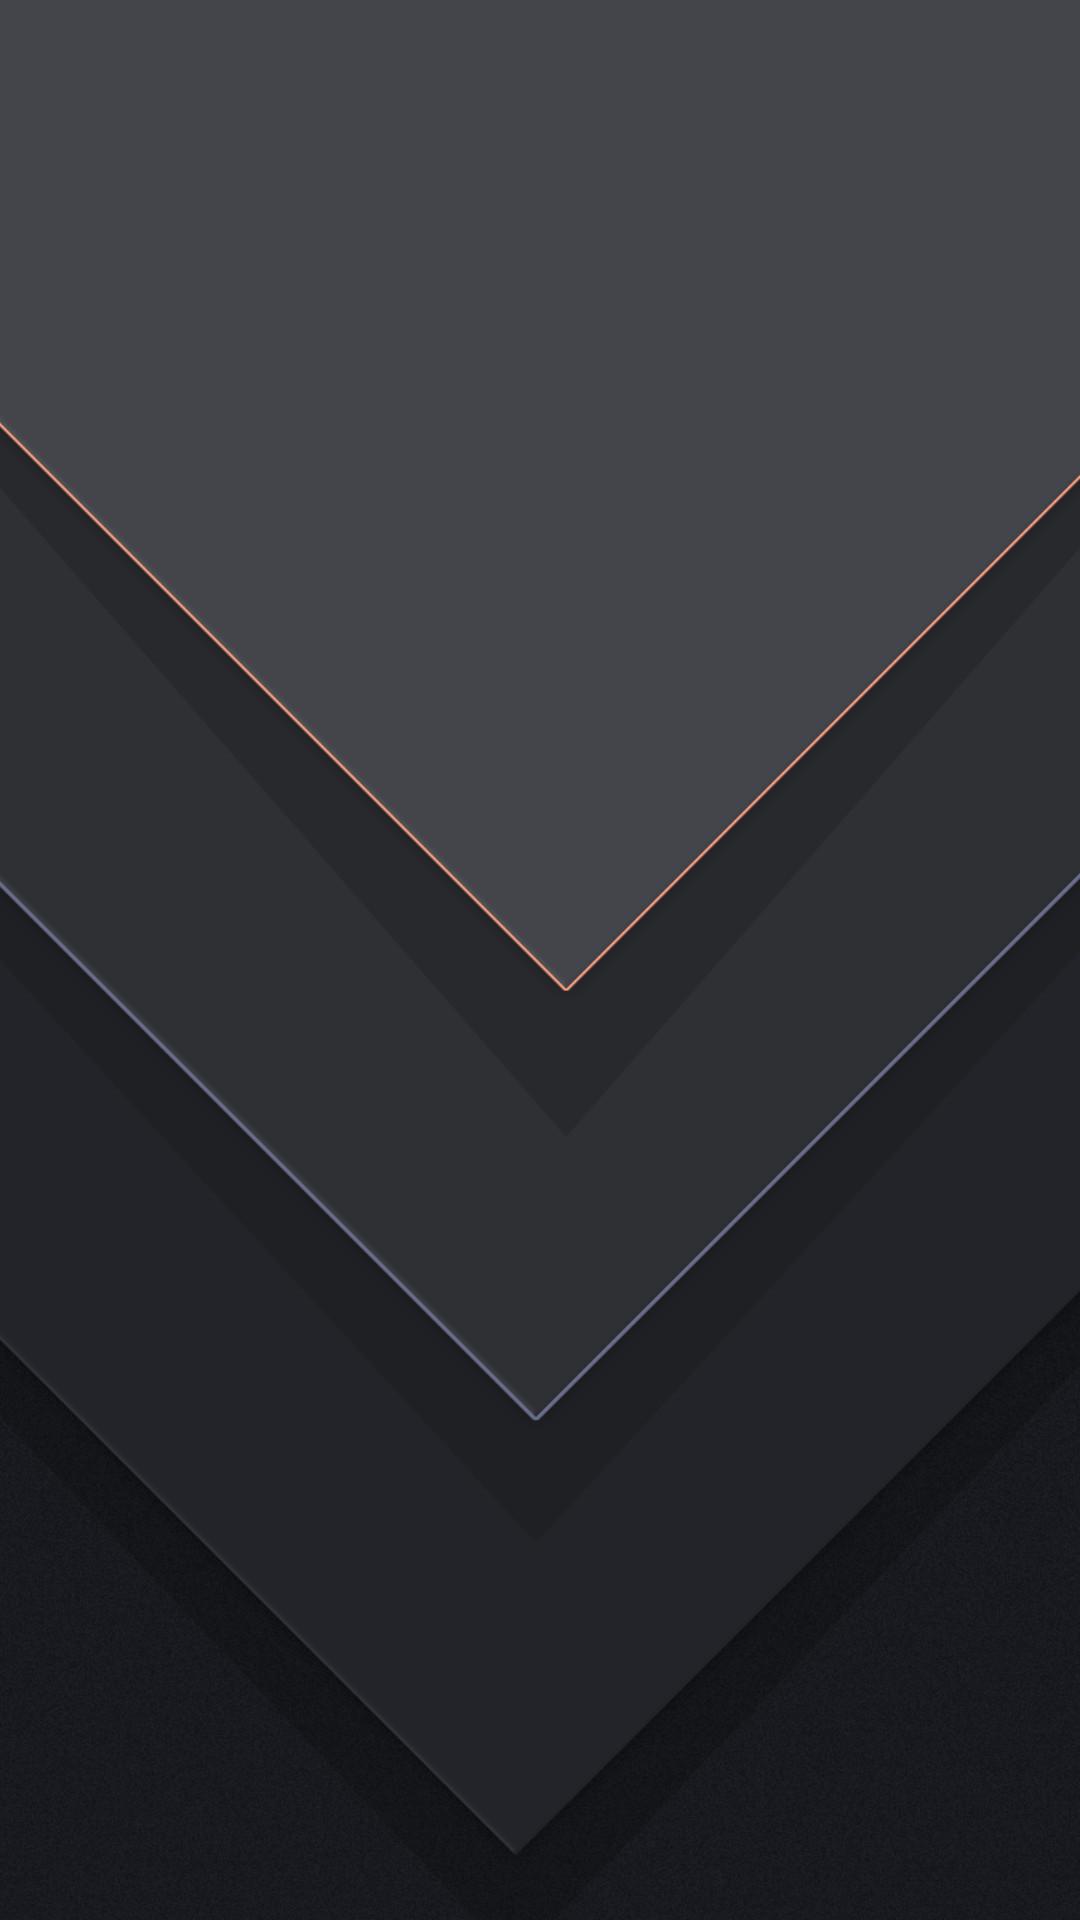 Res: 1080x1920, Dark-Grey-Material-Android-Wallpaper.png